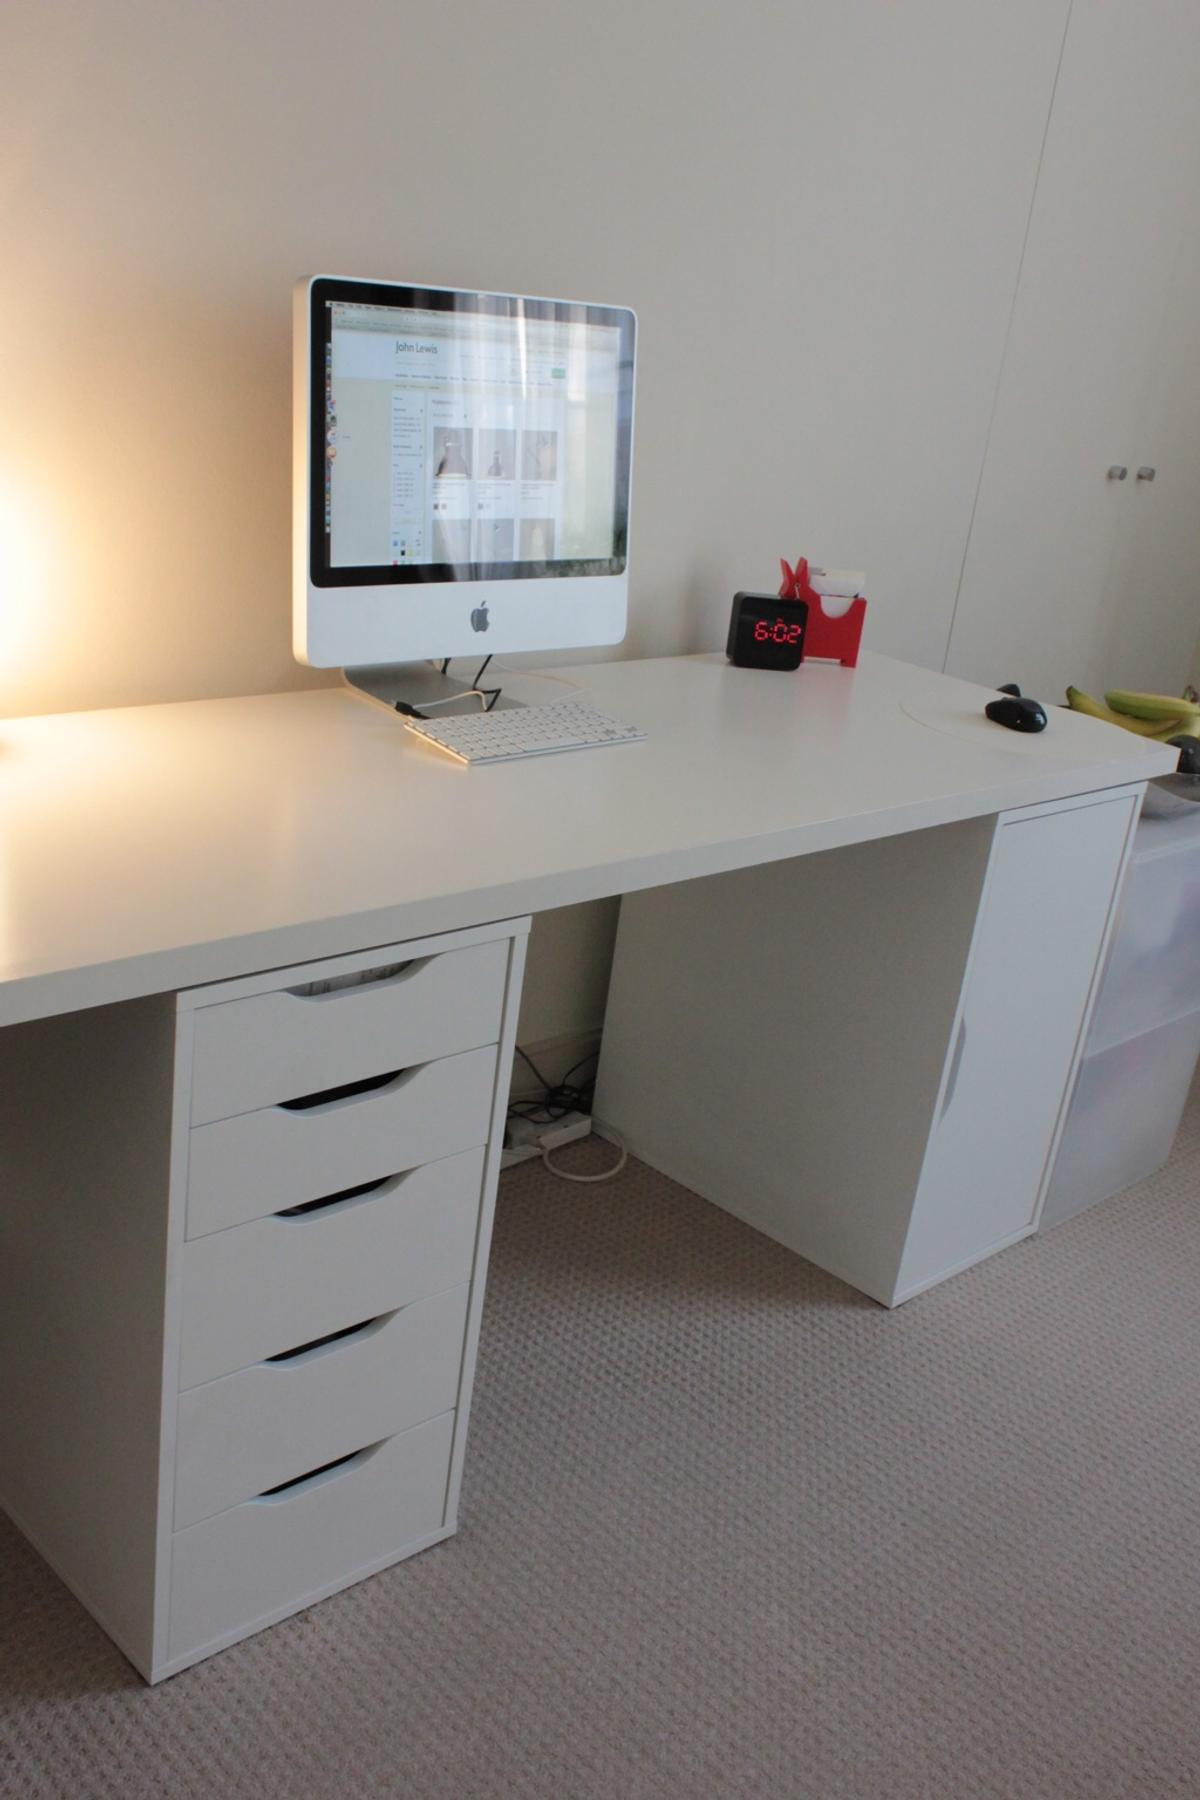 Ikea Desk Top Ikea Linnmon Alex Table Top In W1g London For 8 00 For Sale Shpock